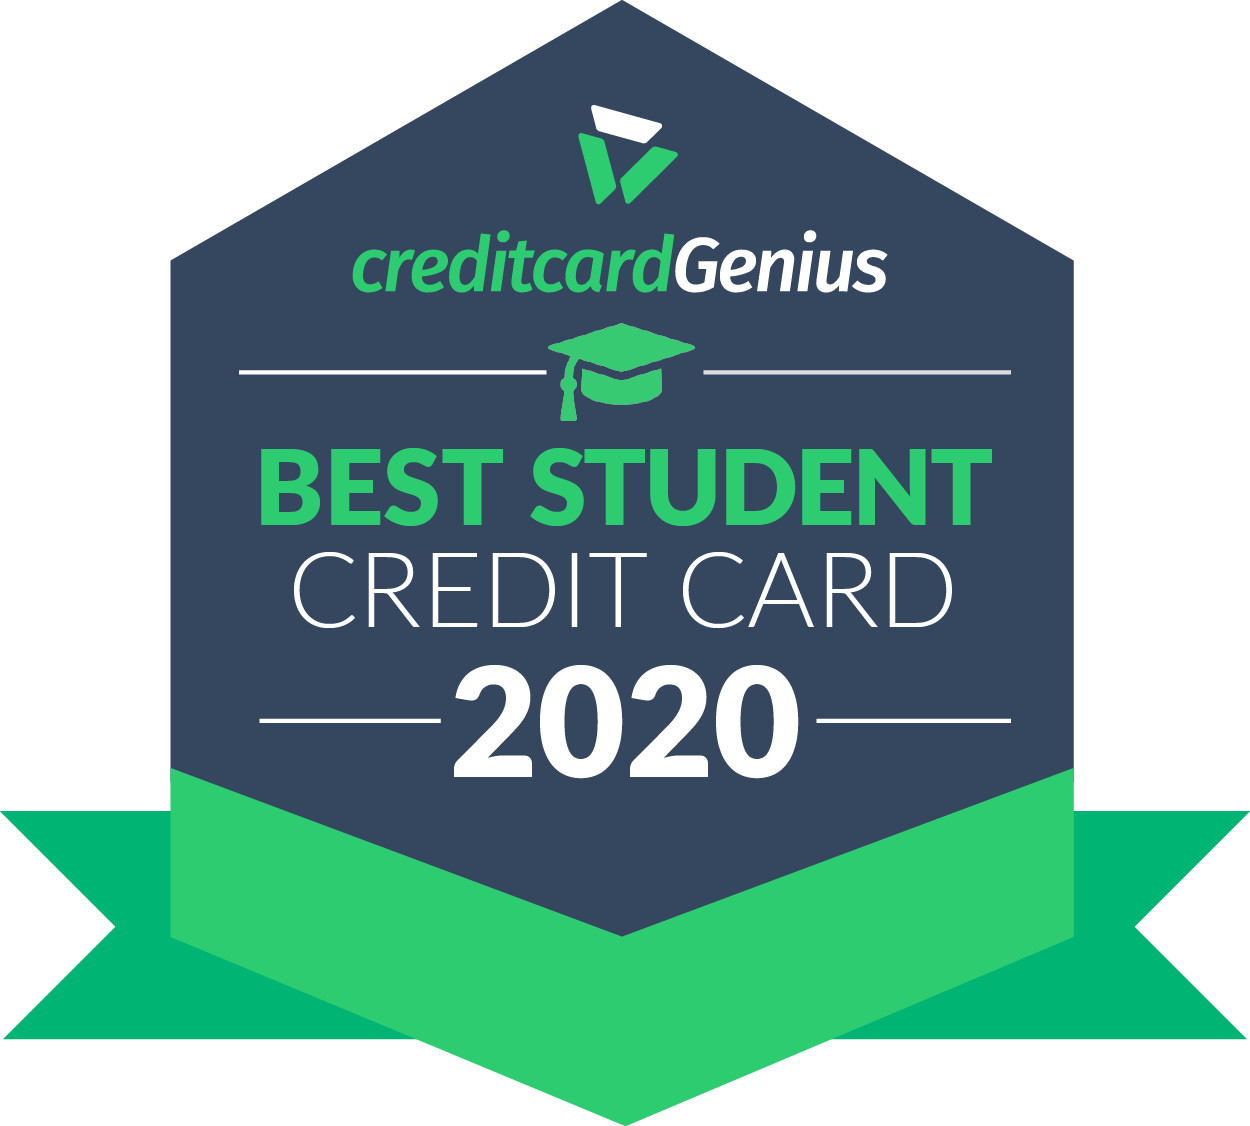 Best student credit carn in Canada for 2020 award seal